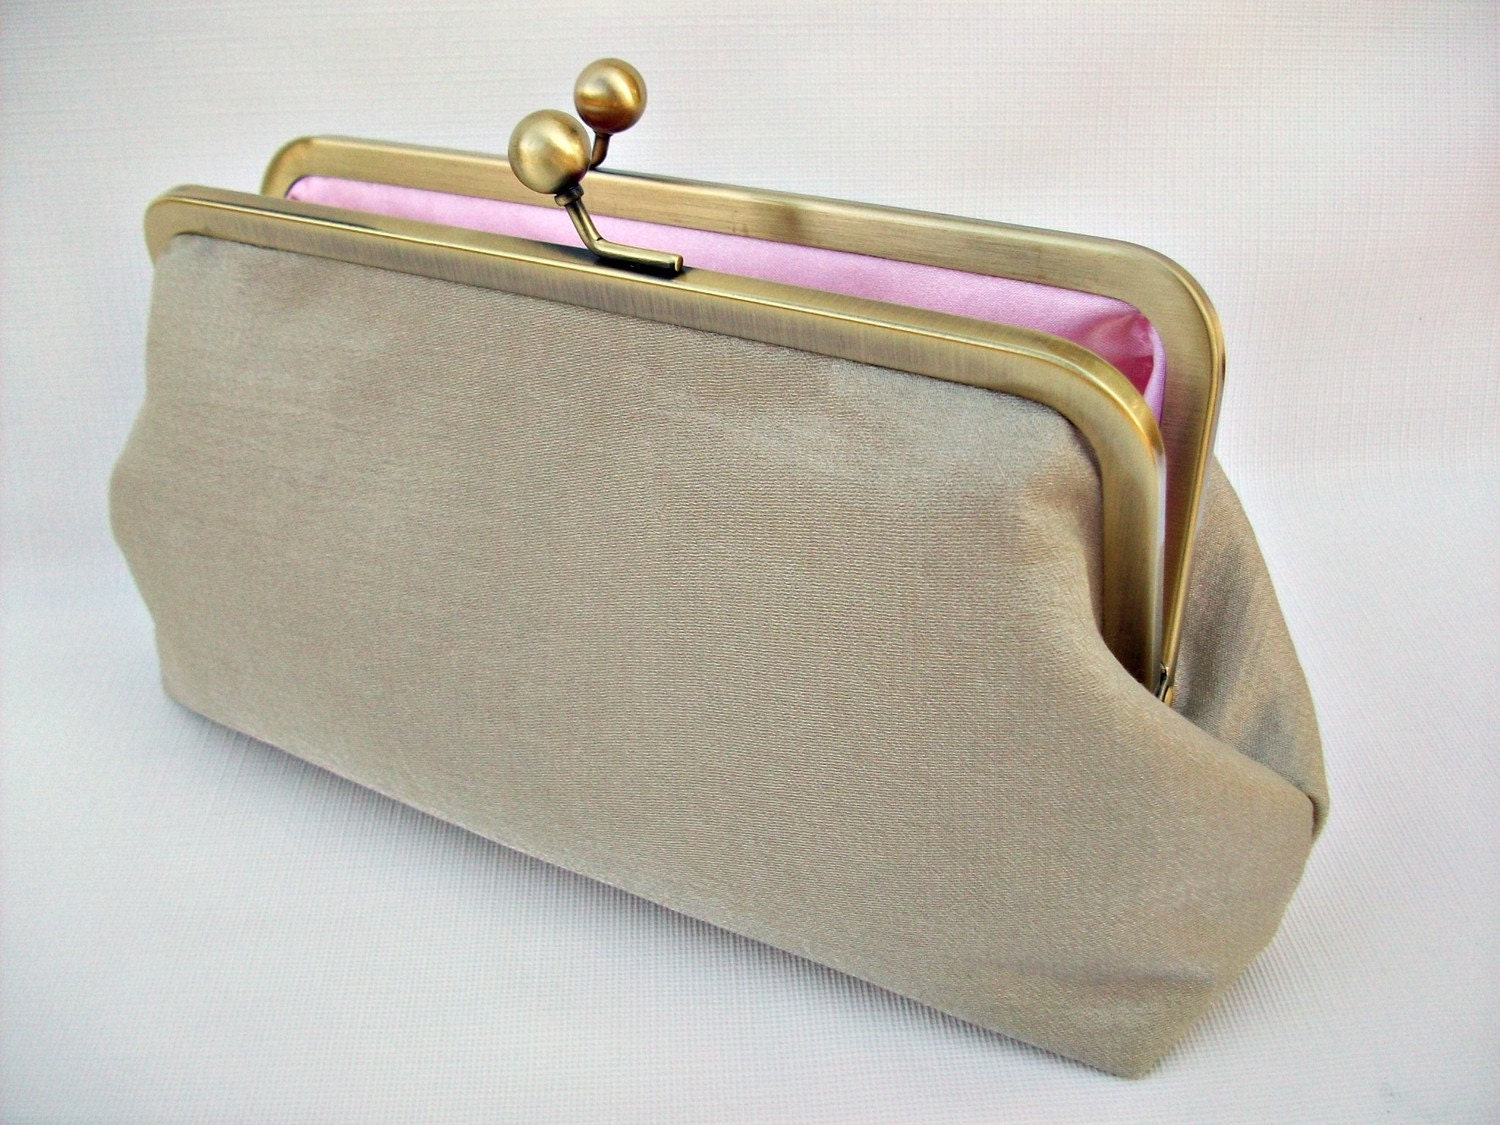 Bronze Gold and Pink Clutch Purse for Wedding